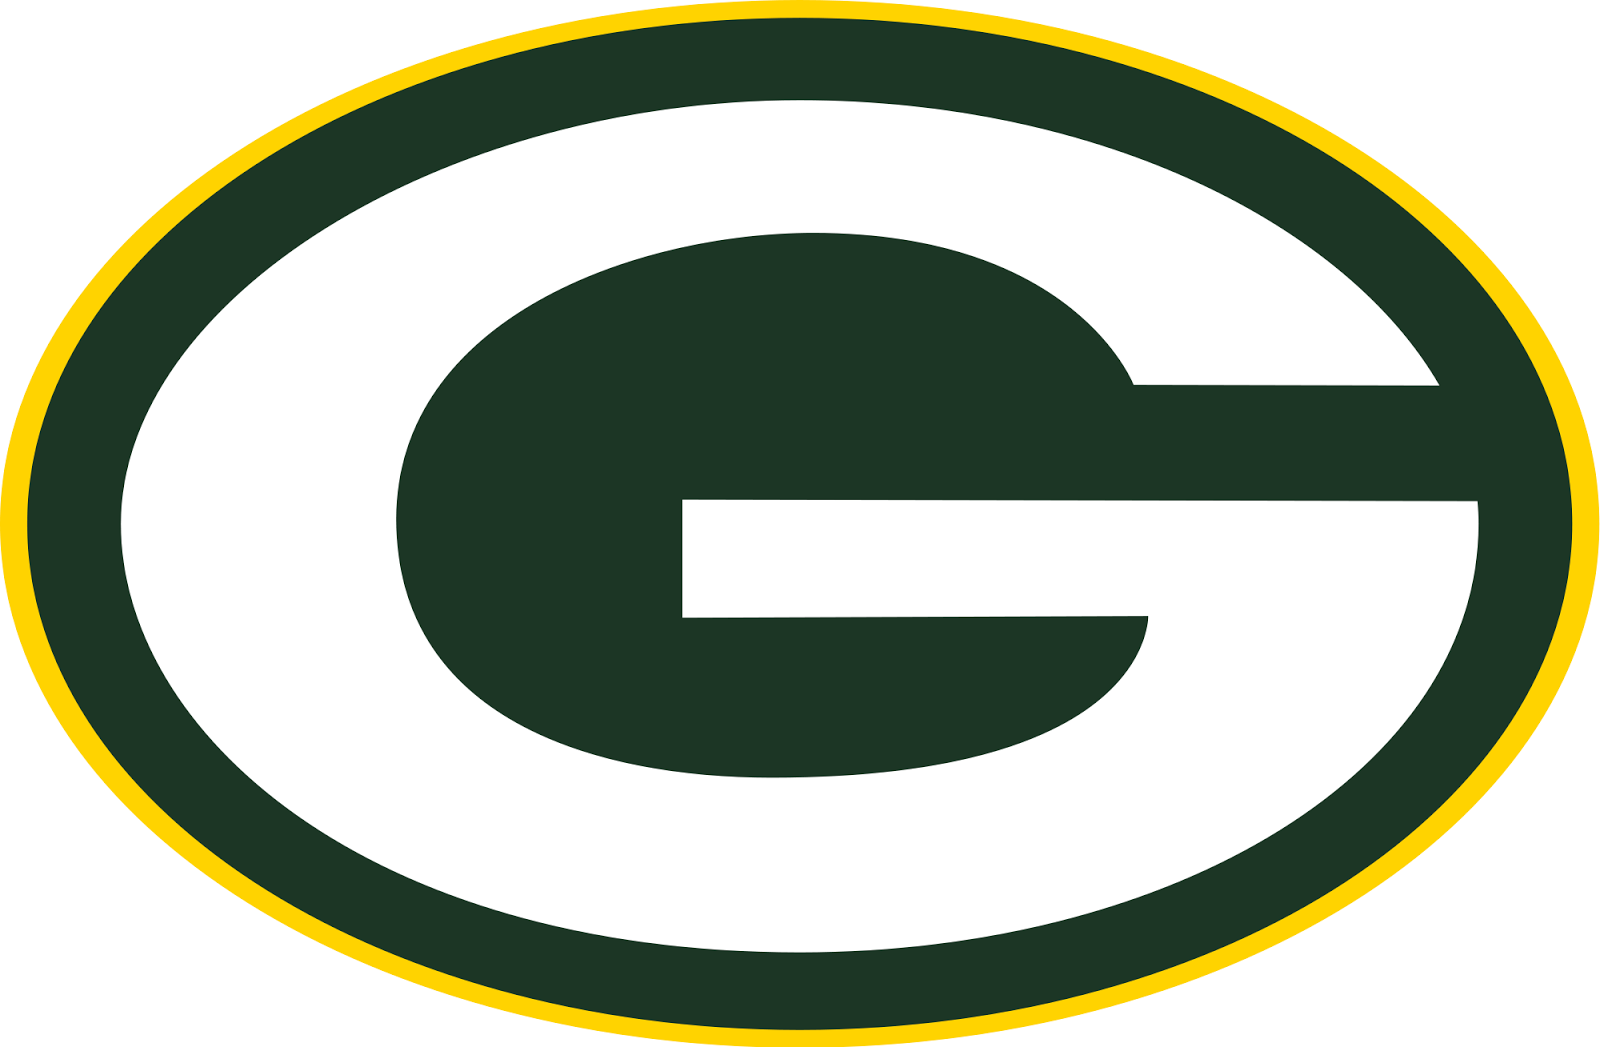 The Nfl Report Top 10 Nfl Logos Green Bay Packers Logo Green Bay Logo Green Bay